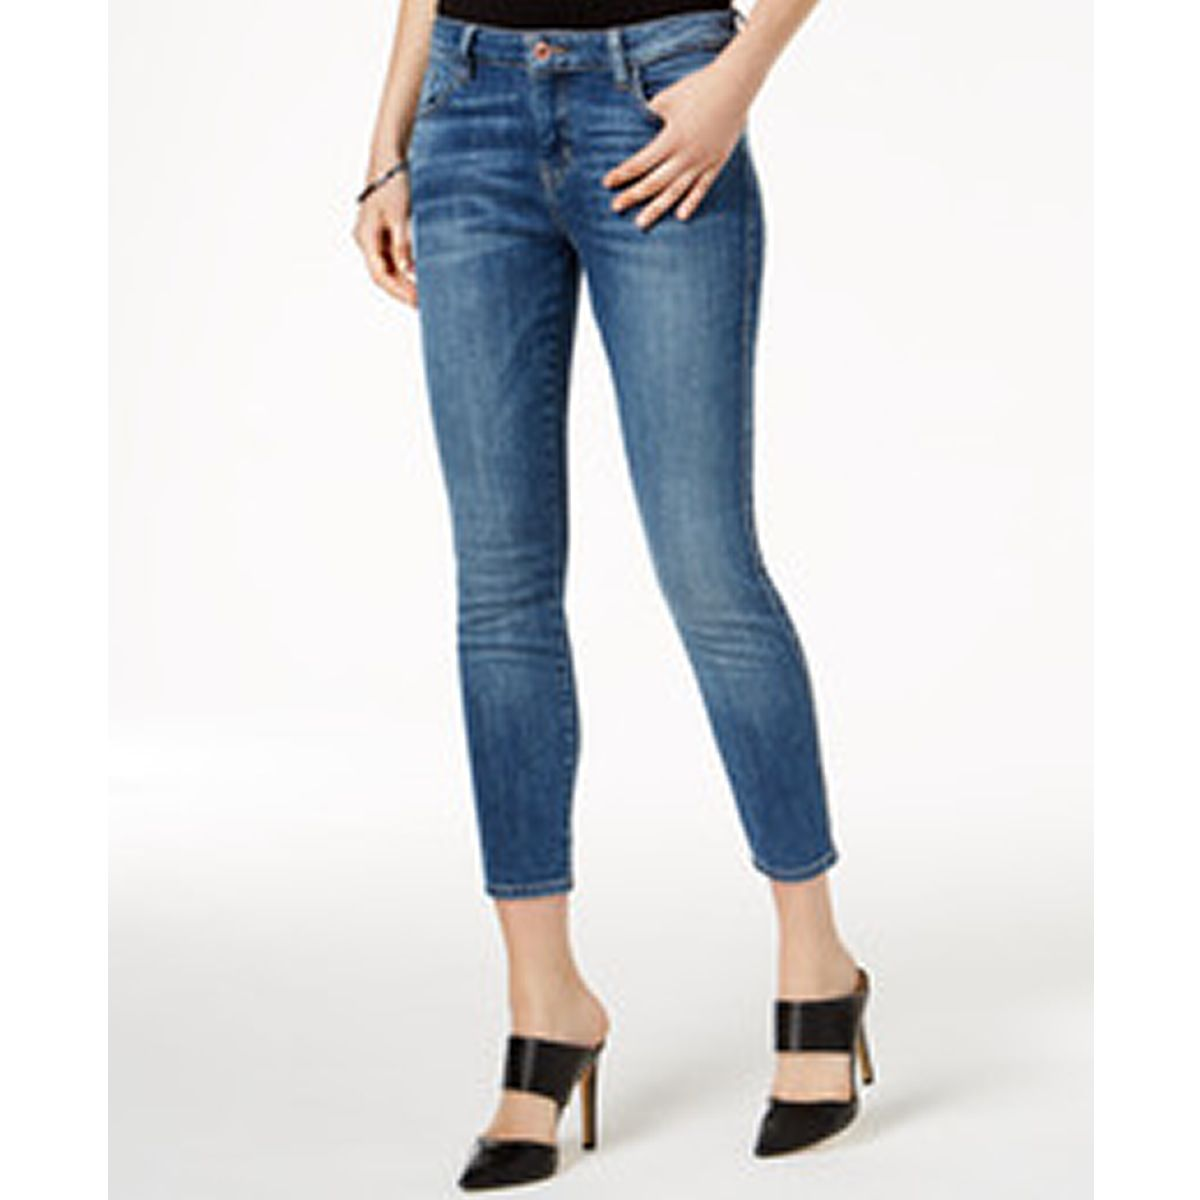 6ebd27d0953f GUESS Clothing for Women - Macy s